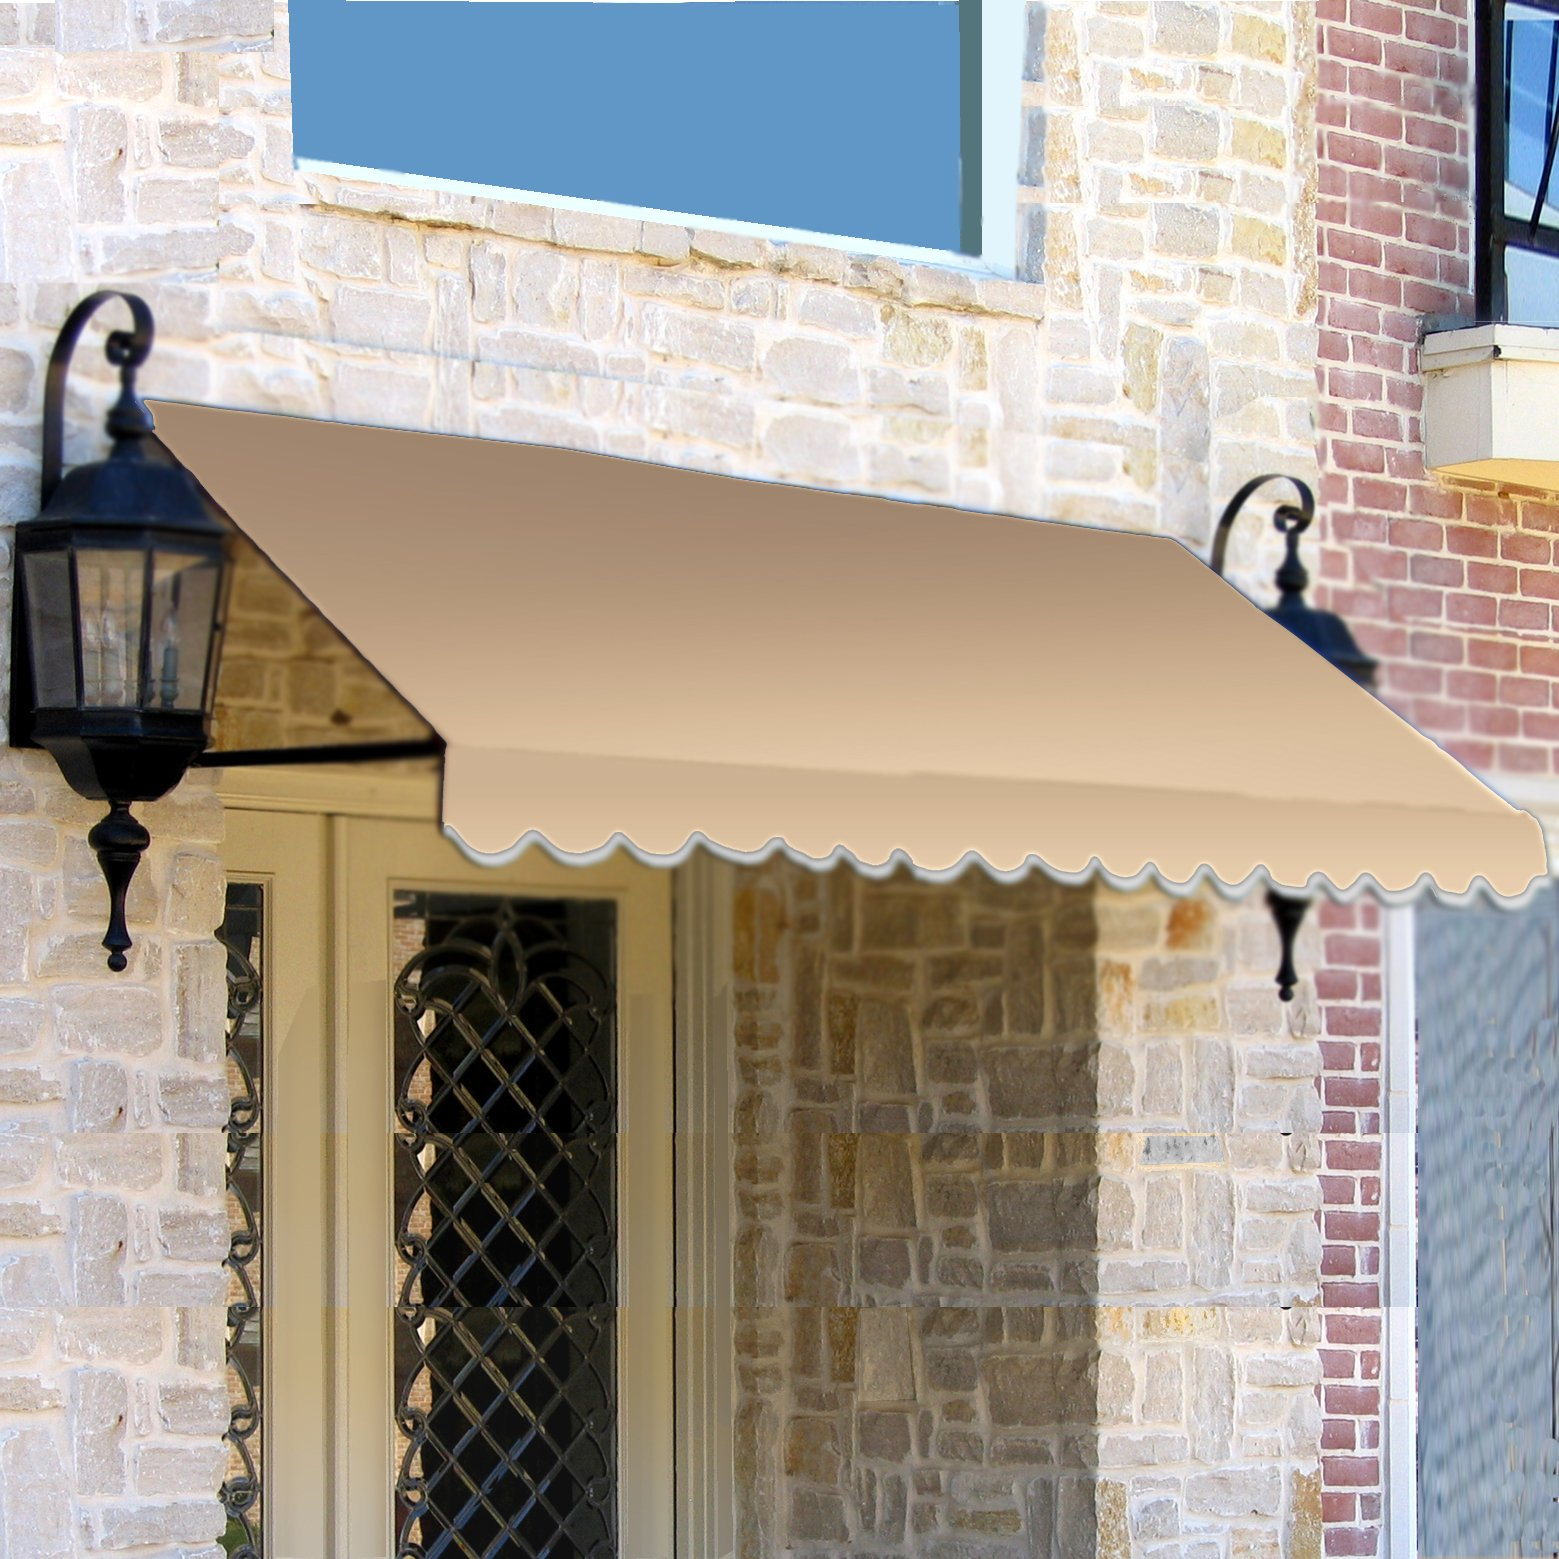 Awntech 5-Feet Dallas Retro Window/Entry Awning, 44 by 48-Inch, Linen